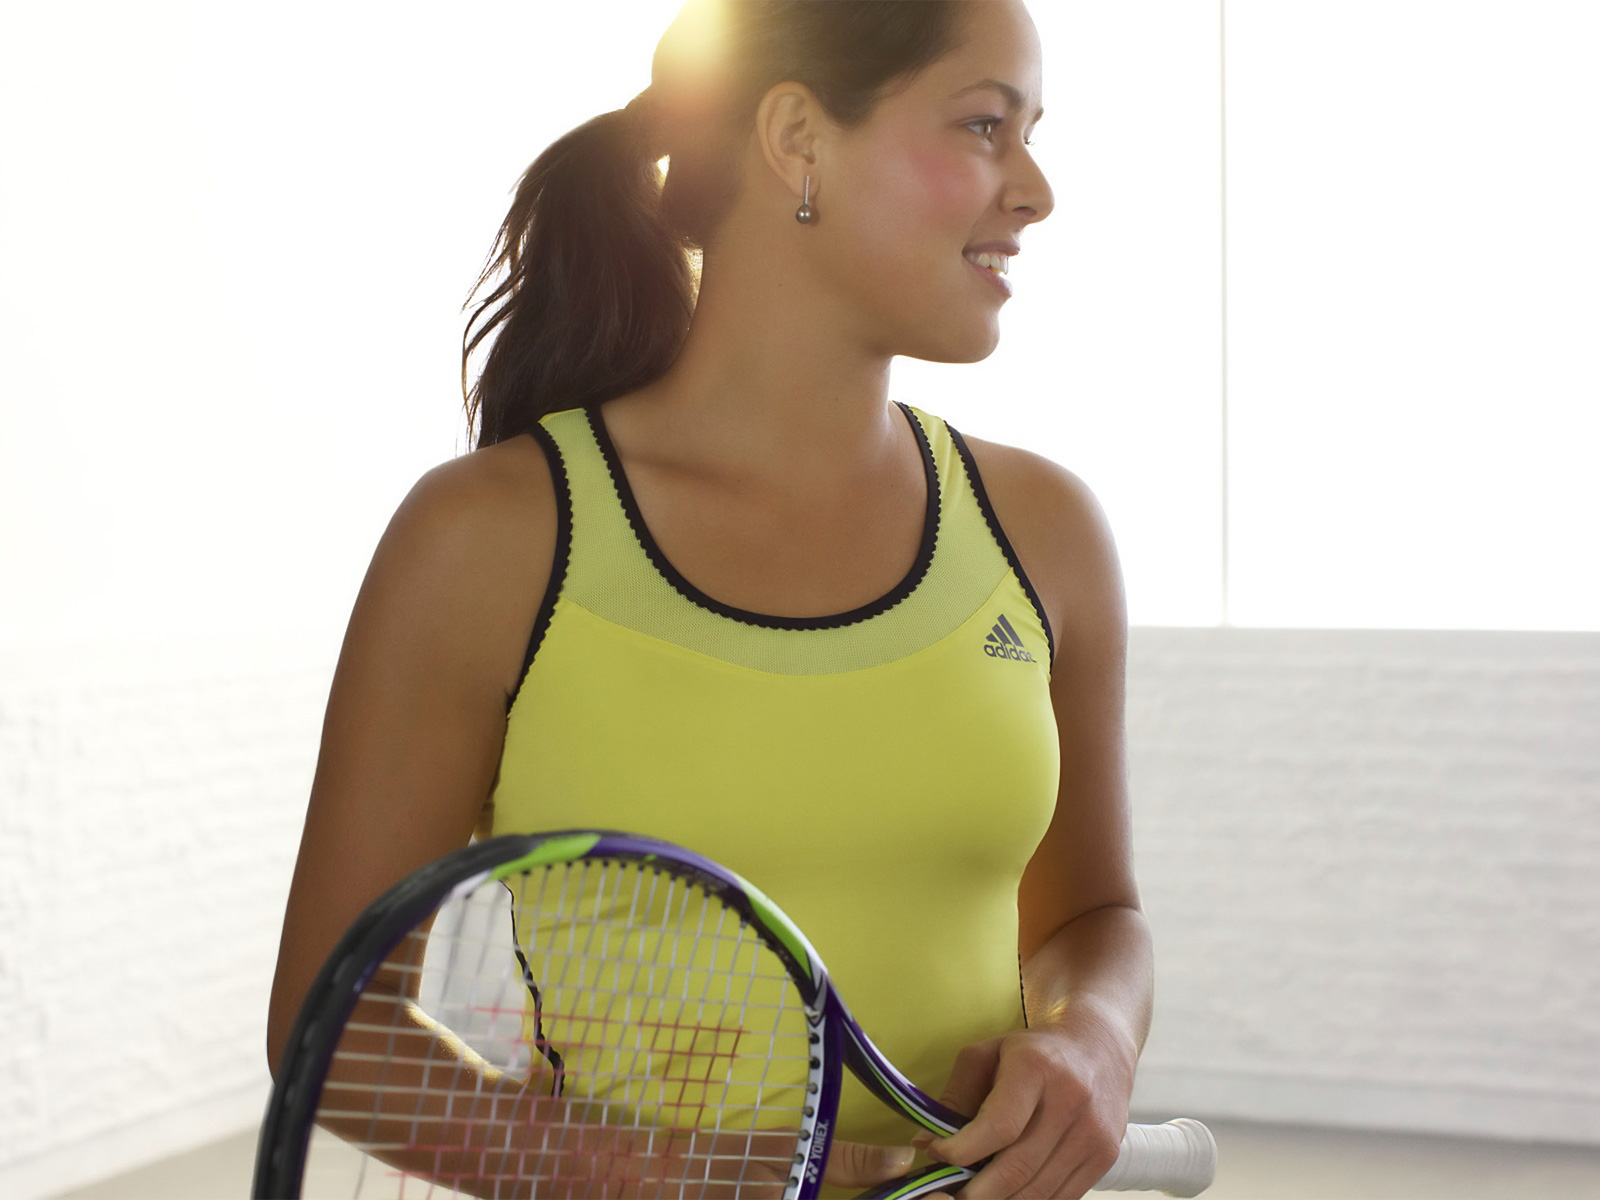 Ana Ivanovic 7 wallpaper